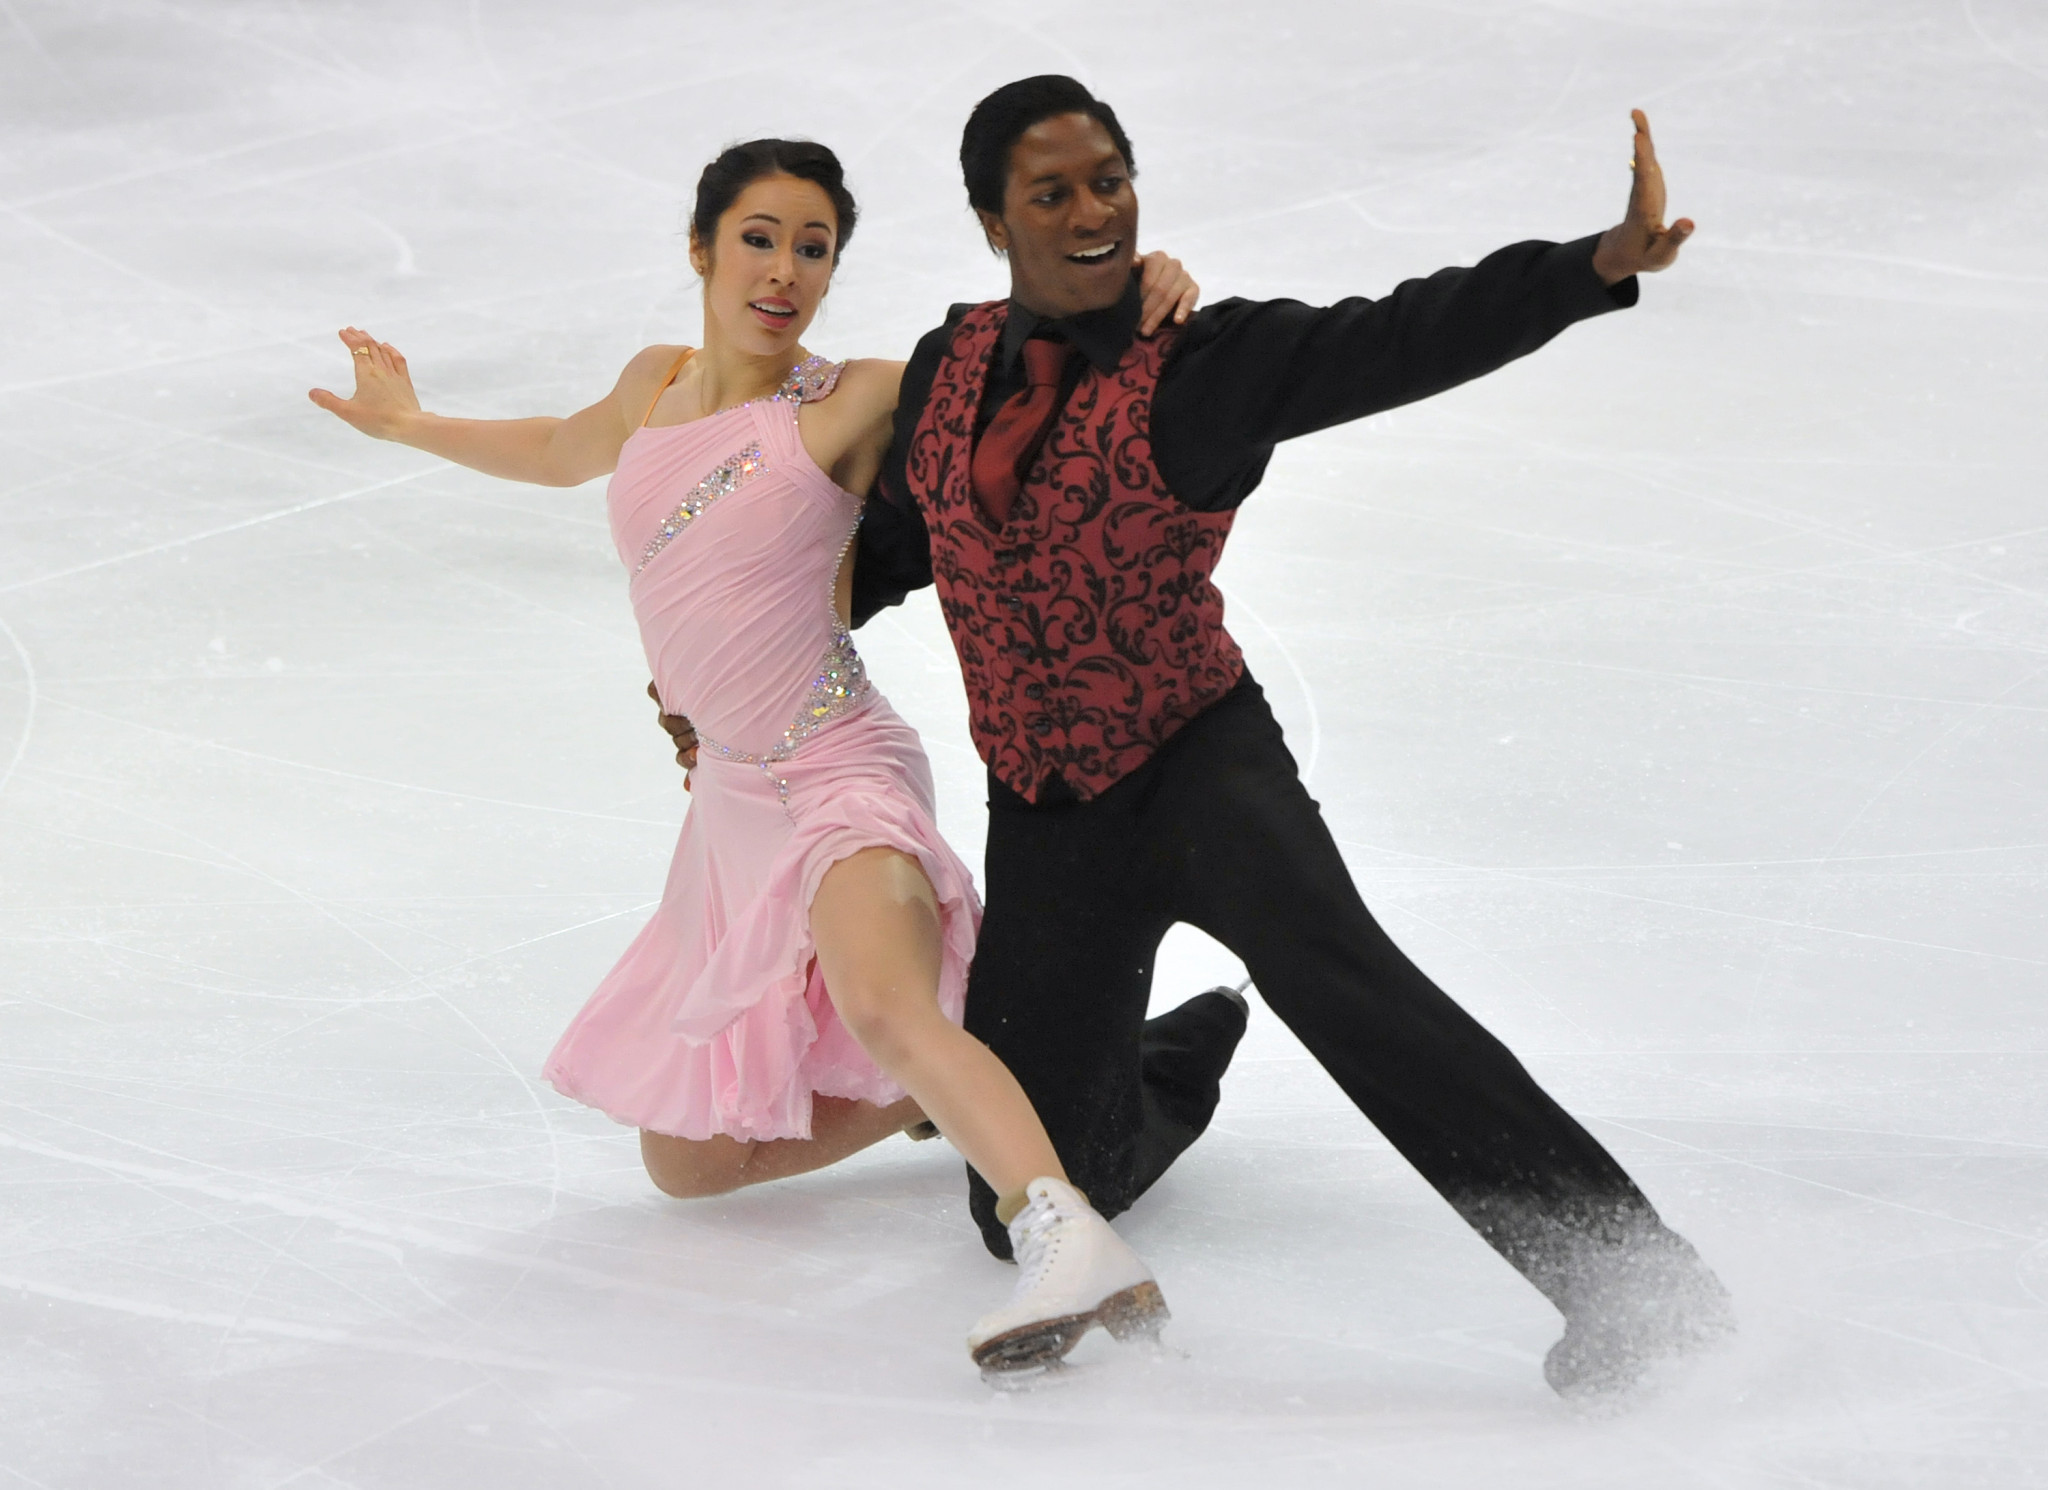 Asher Hill claimed Skate Canada had ignored his past complaints of racism, misogyny, homophobia and abuse ©Getty Images